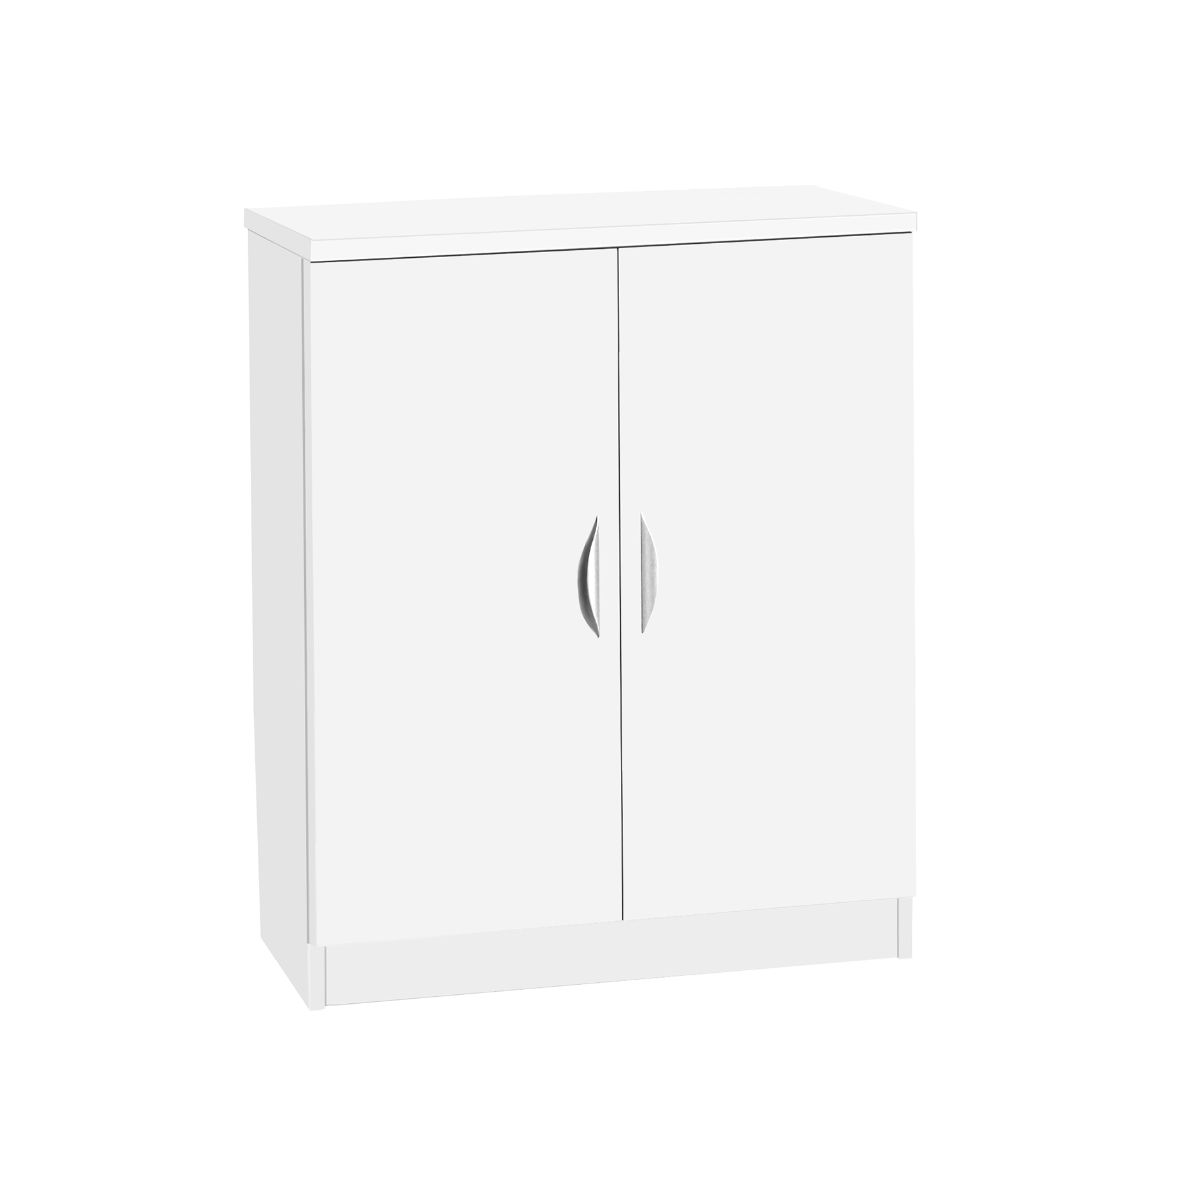 R White Two Door Mid Height Cupboard, White